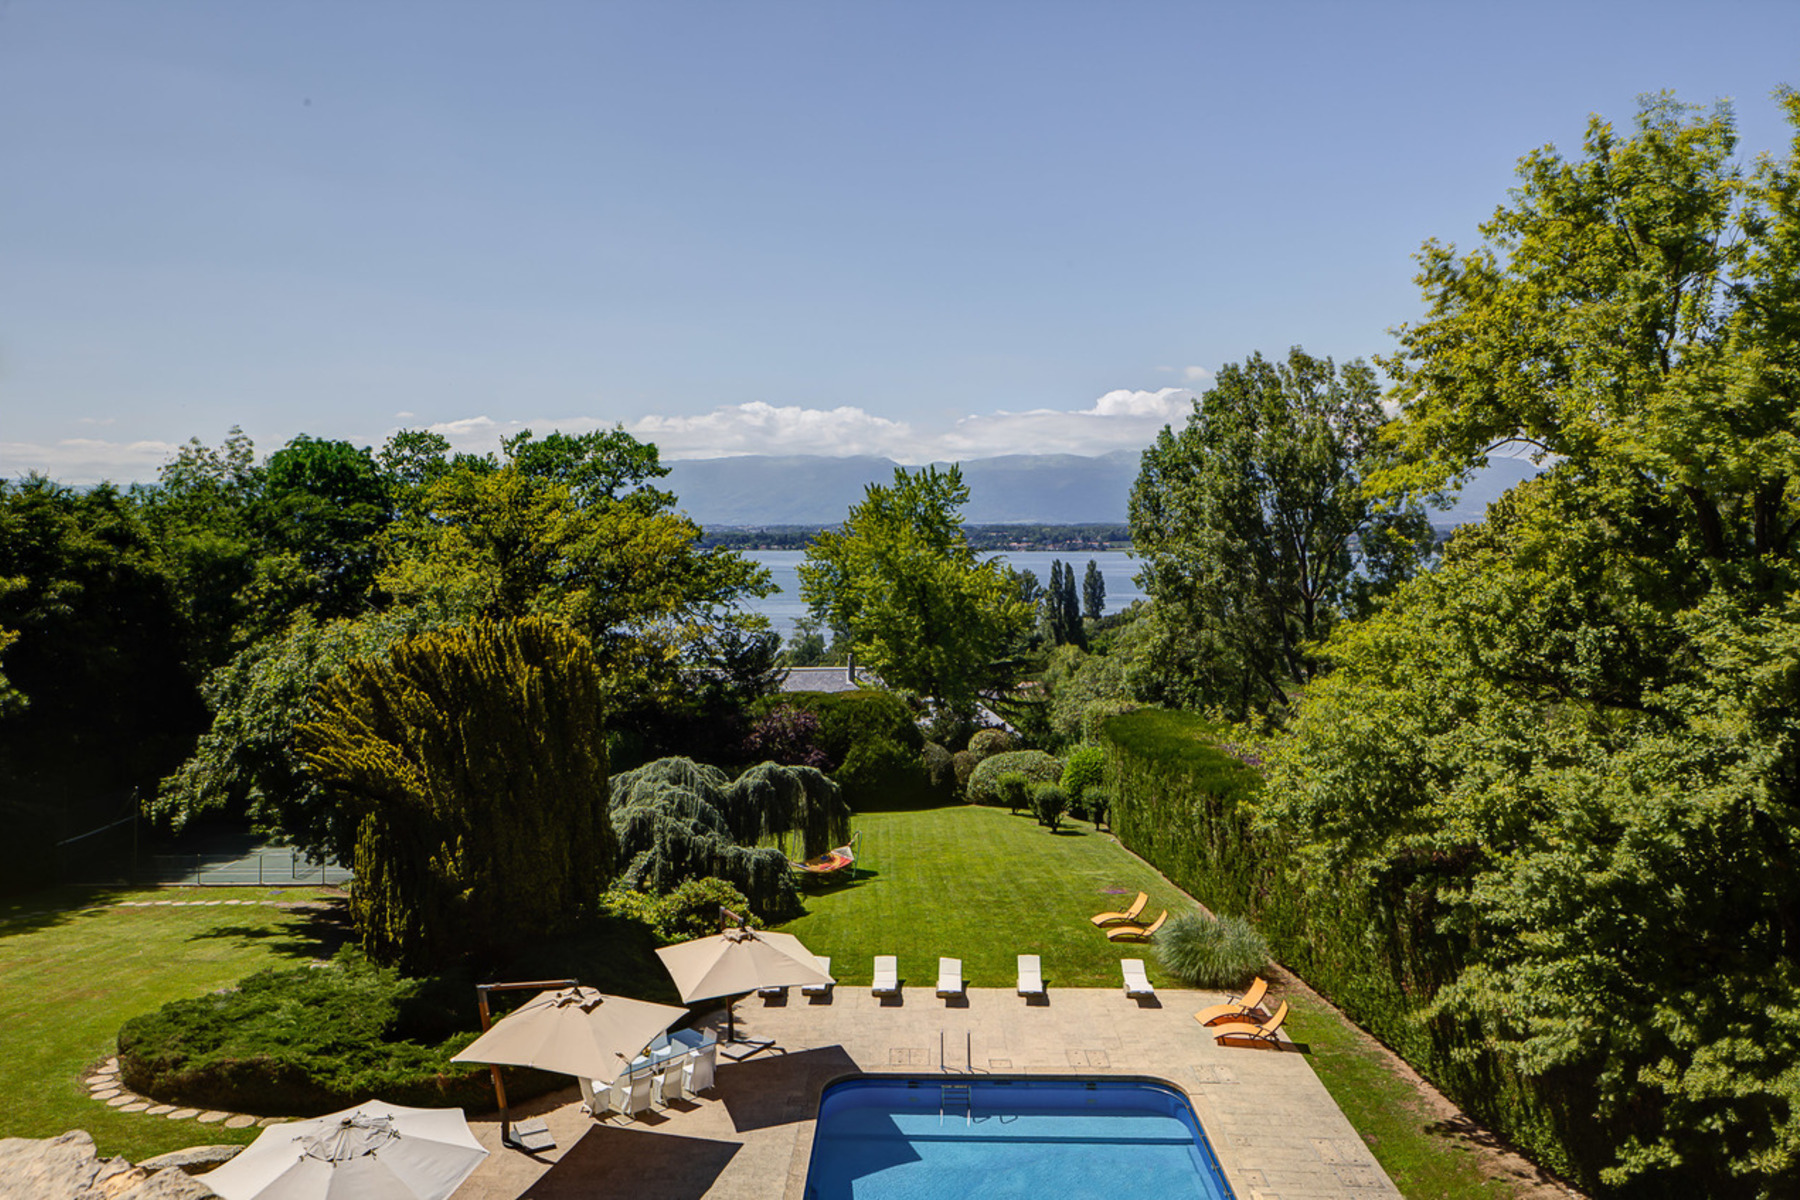 Single Family Home for Sale at Superb property with view over the lake Vésenaz Vesenaz, Geneva, 1222 Switzerland